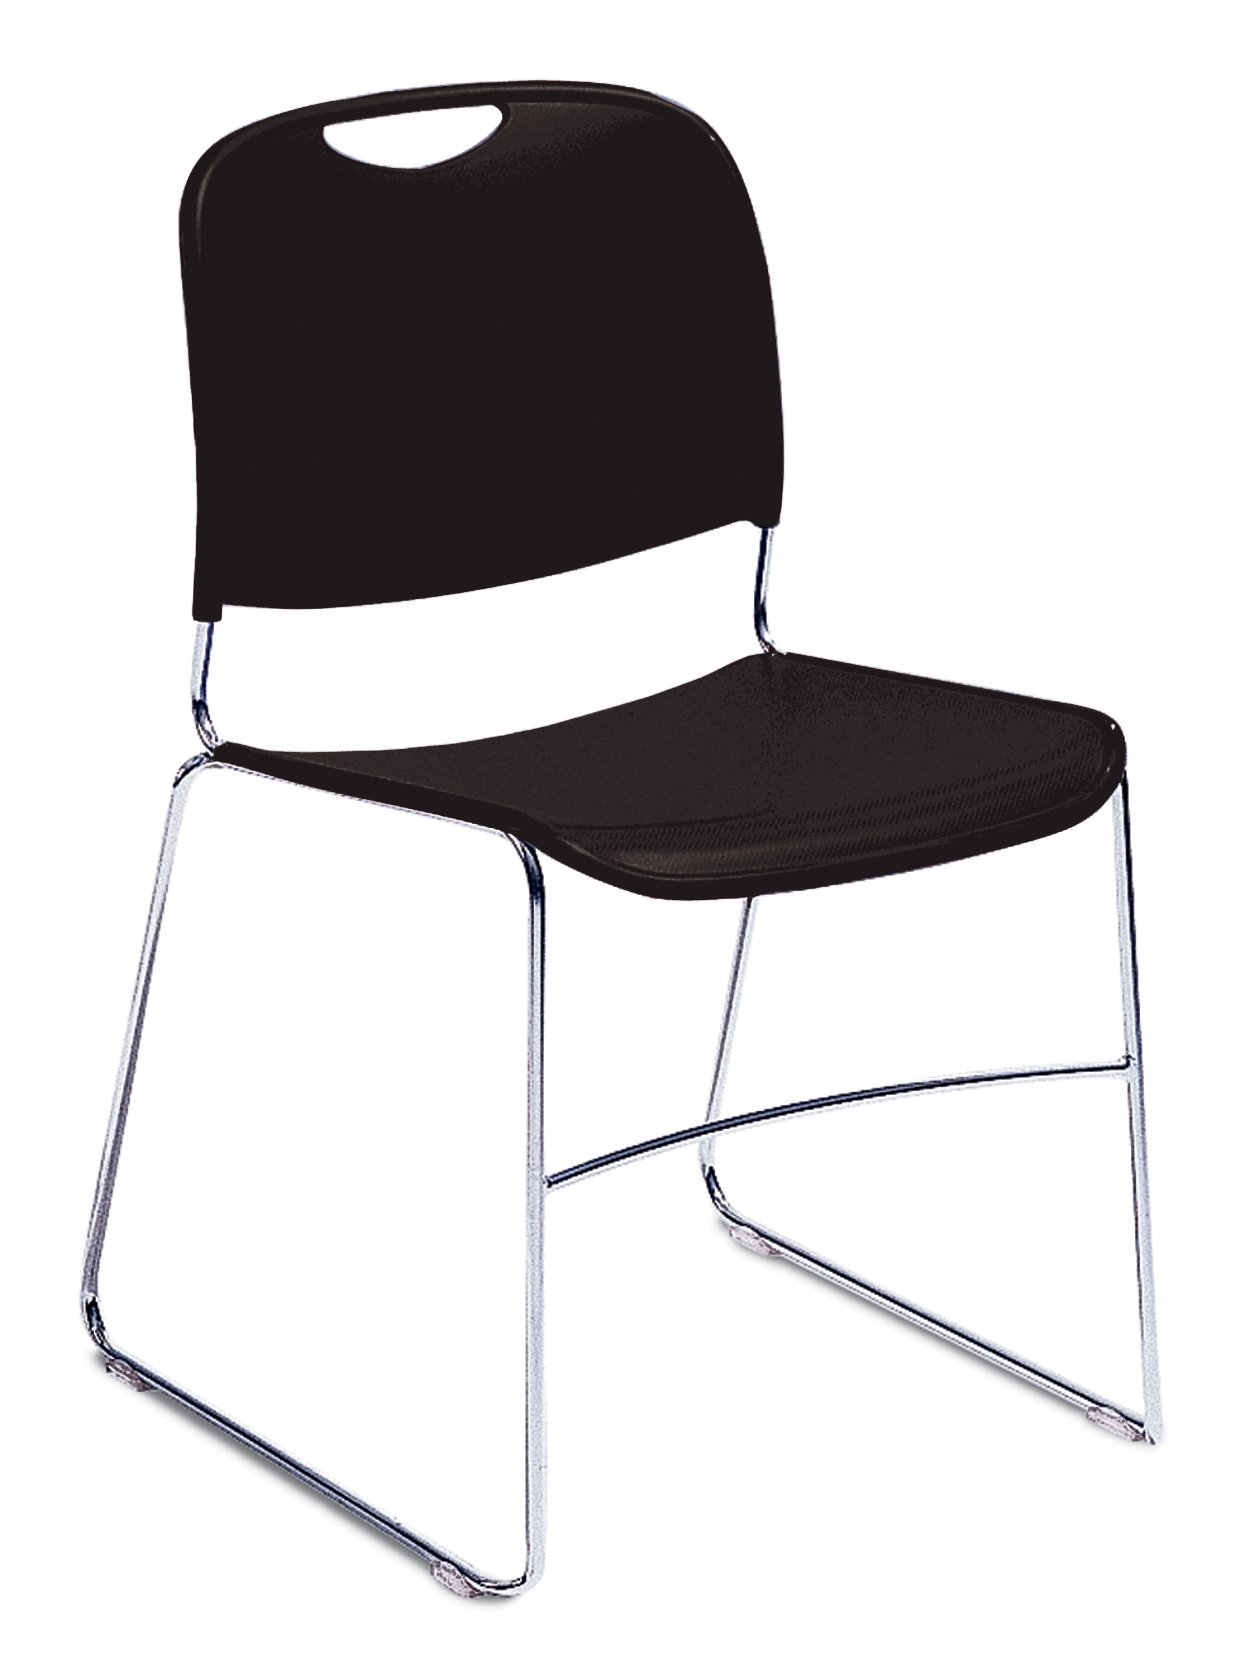 NPS 8510-CN Ultra-compact Plastic Stack Chair, 300-lb Weight Capacity, 17-1/2'' Length x 22-1/2'' Width x 31'' Height, Black (Carton of 4)